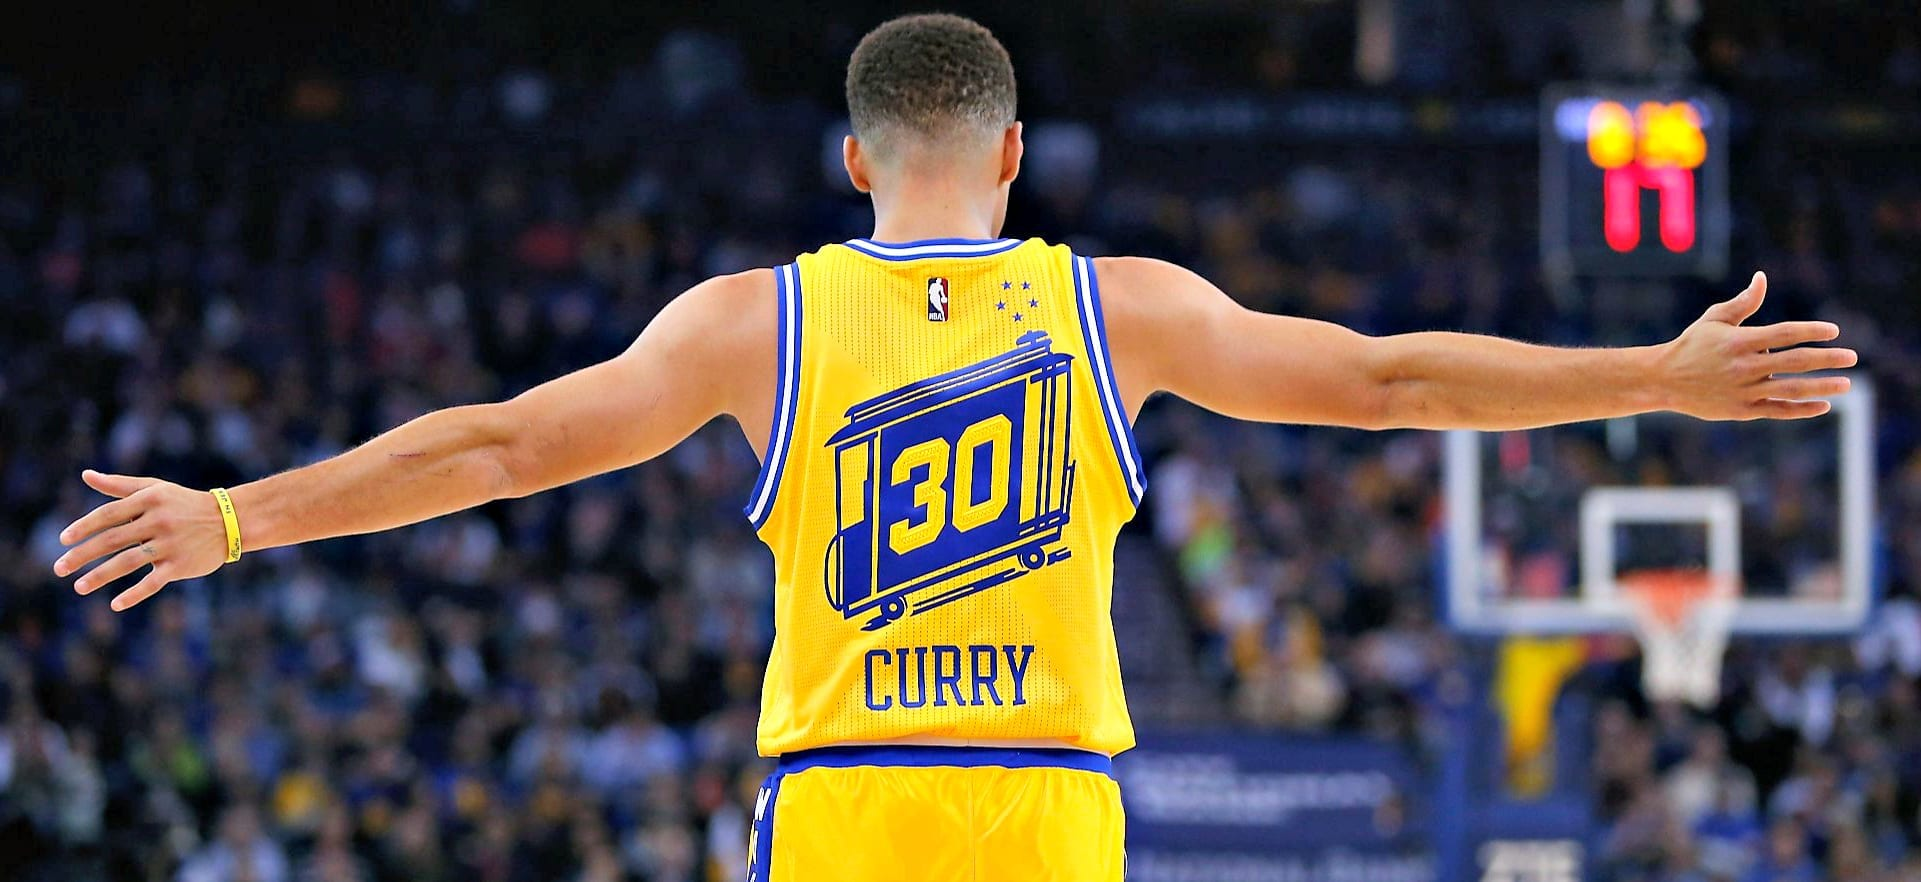 Curry's back